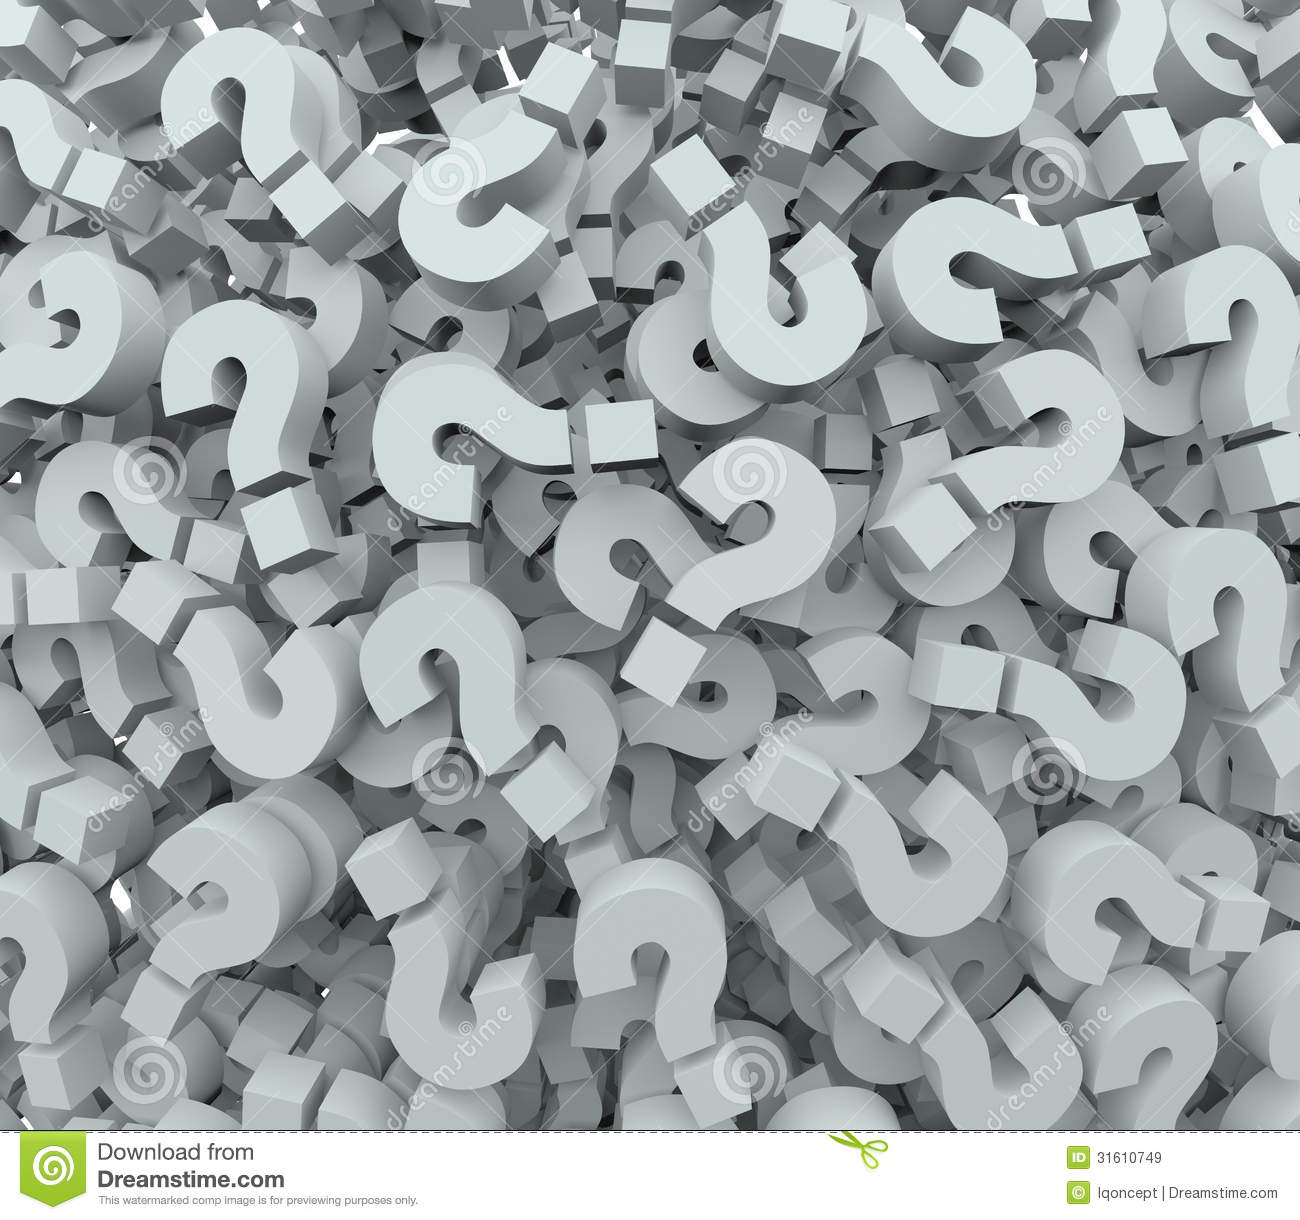 Question Mark Background Quiz Test Learning Imagination Royalty Free Stock Images